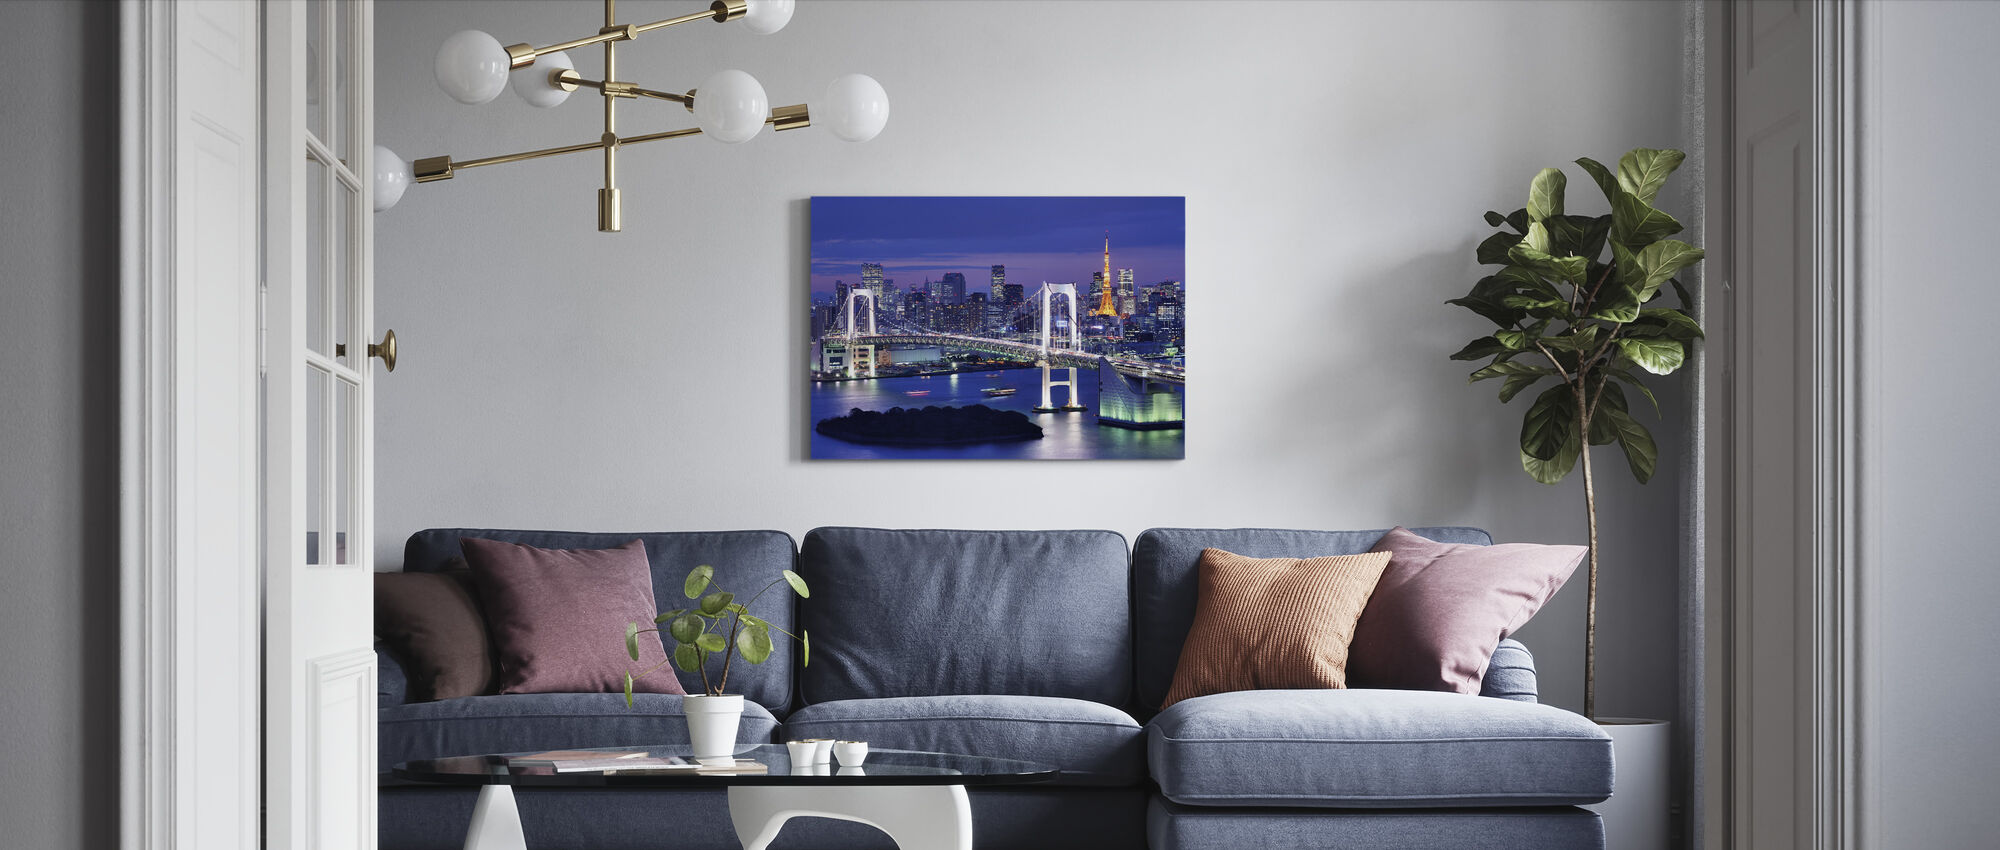 Rainbow Bridge and Tokyo Tower - Canvas print - Living Room